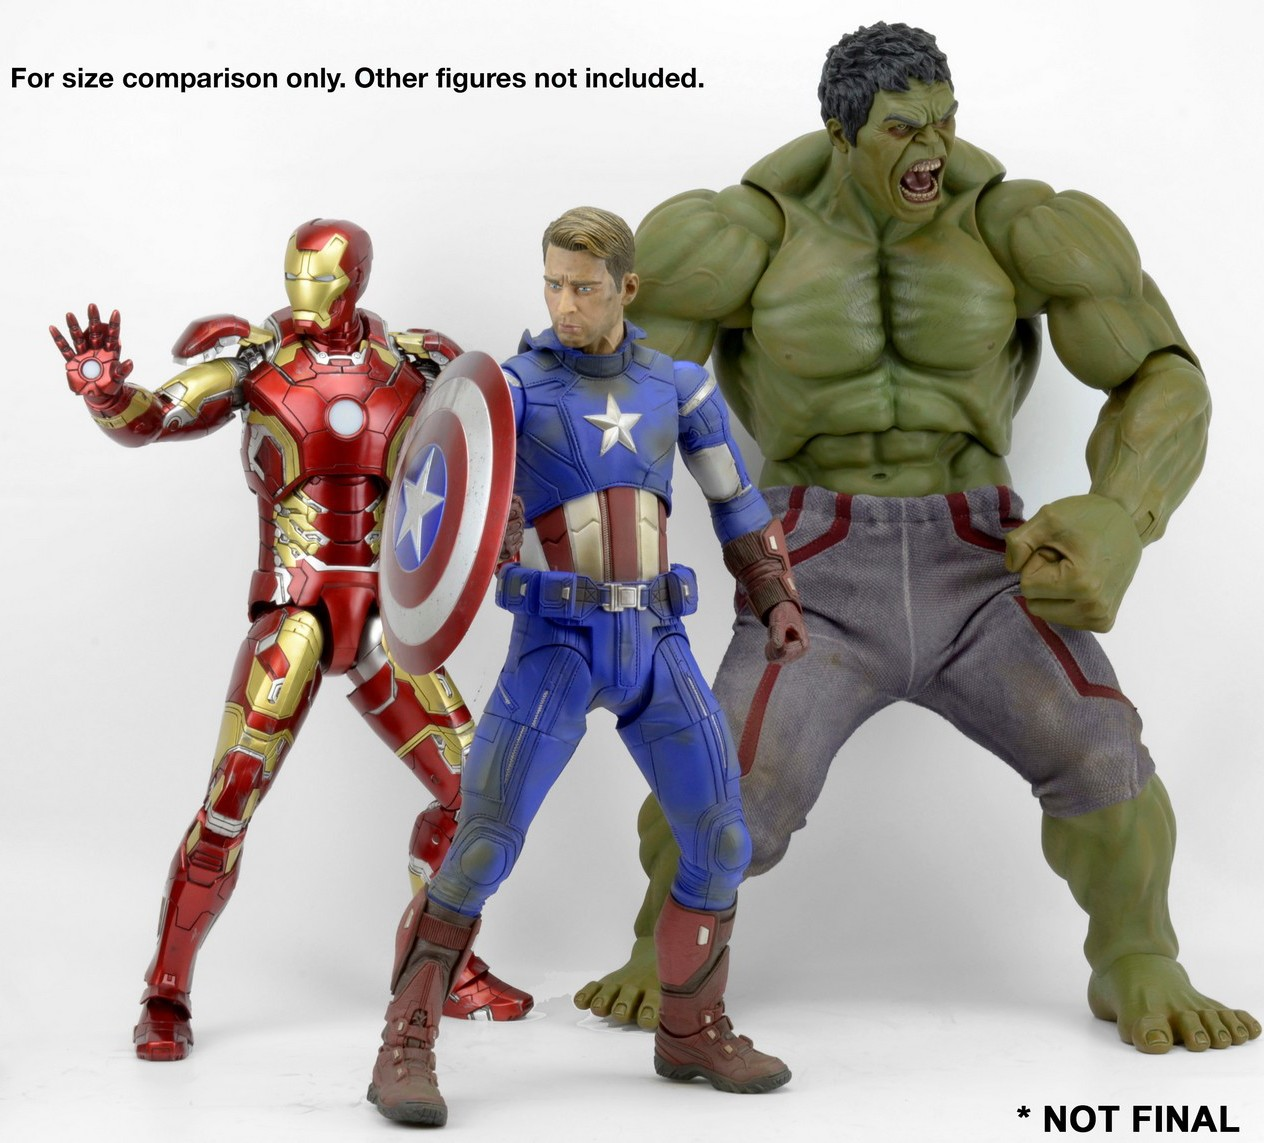 Toy Fair 2016: NECA Hulk 1/4 Figure Up for Order! - Marvel Toy News